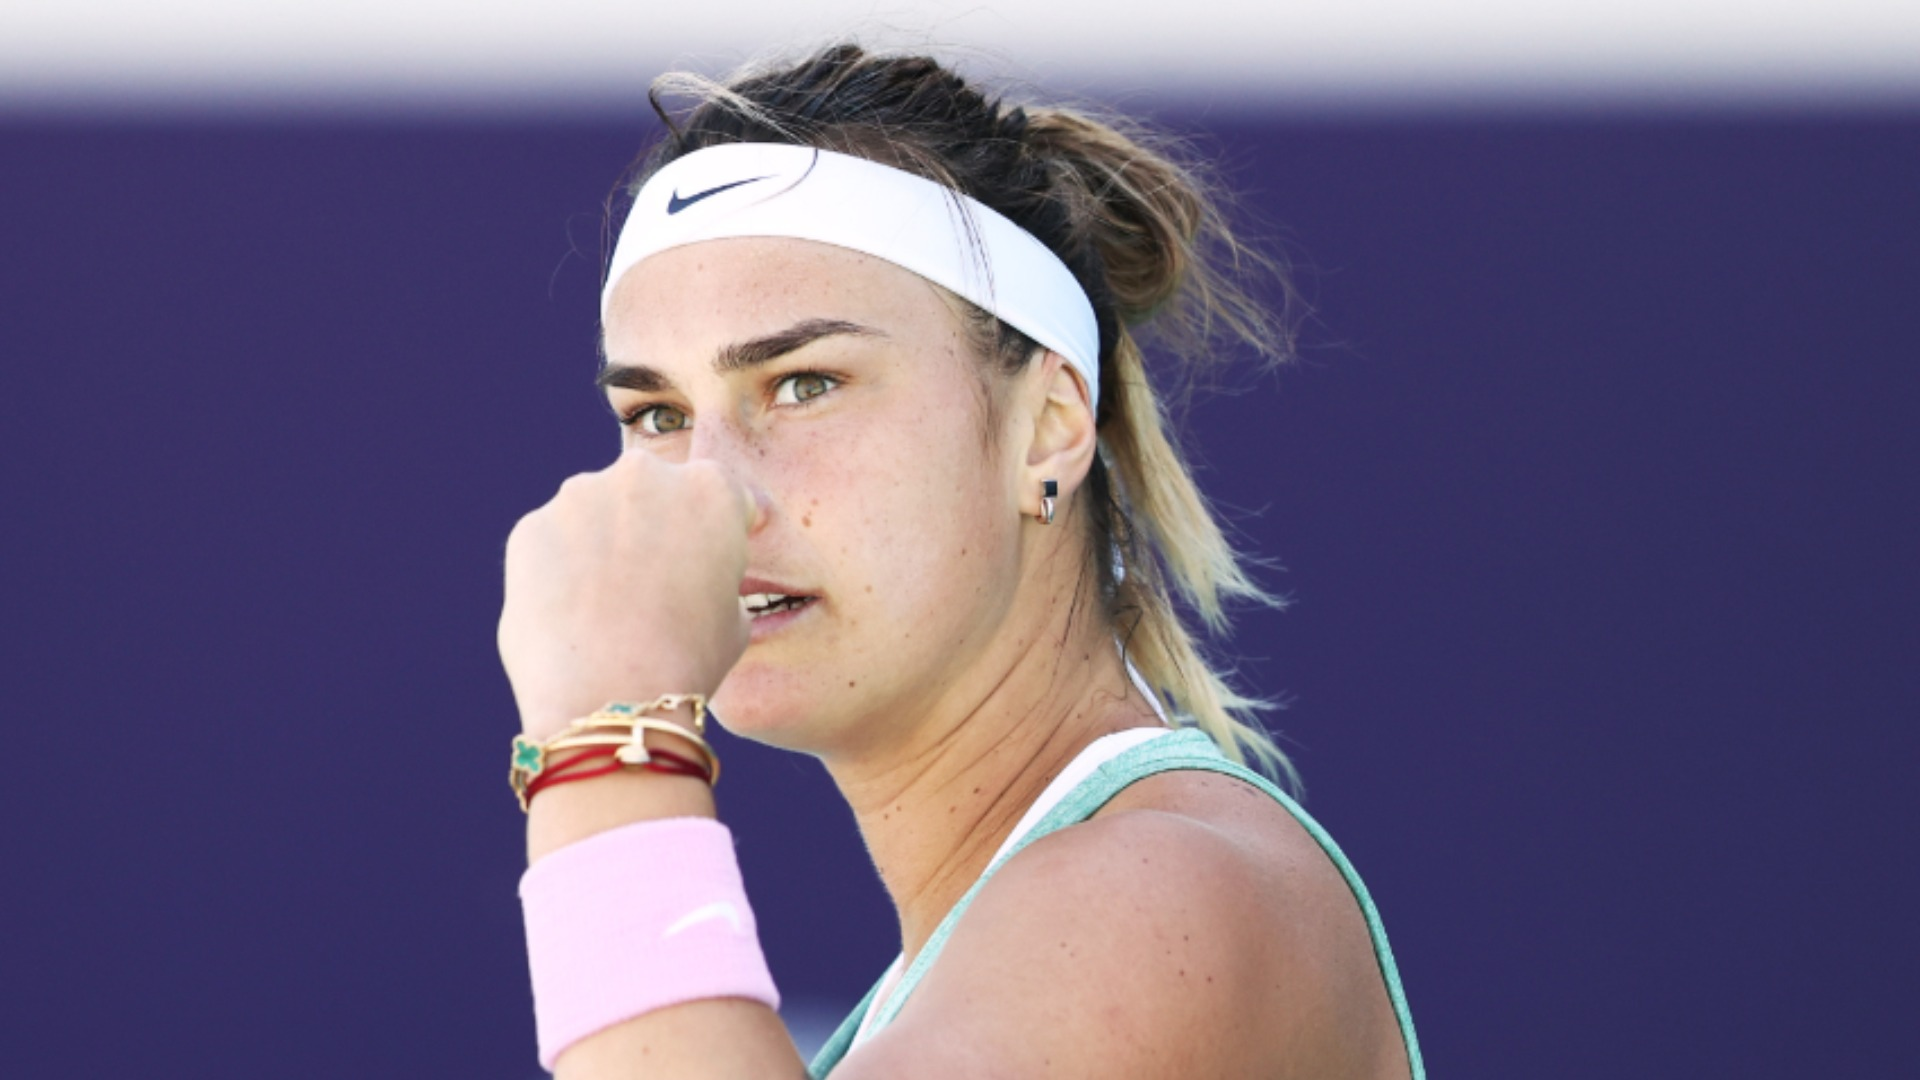 Irrepressible Sabalenka to face Kudermetova in Abu Dhabi final